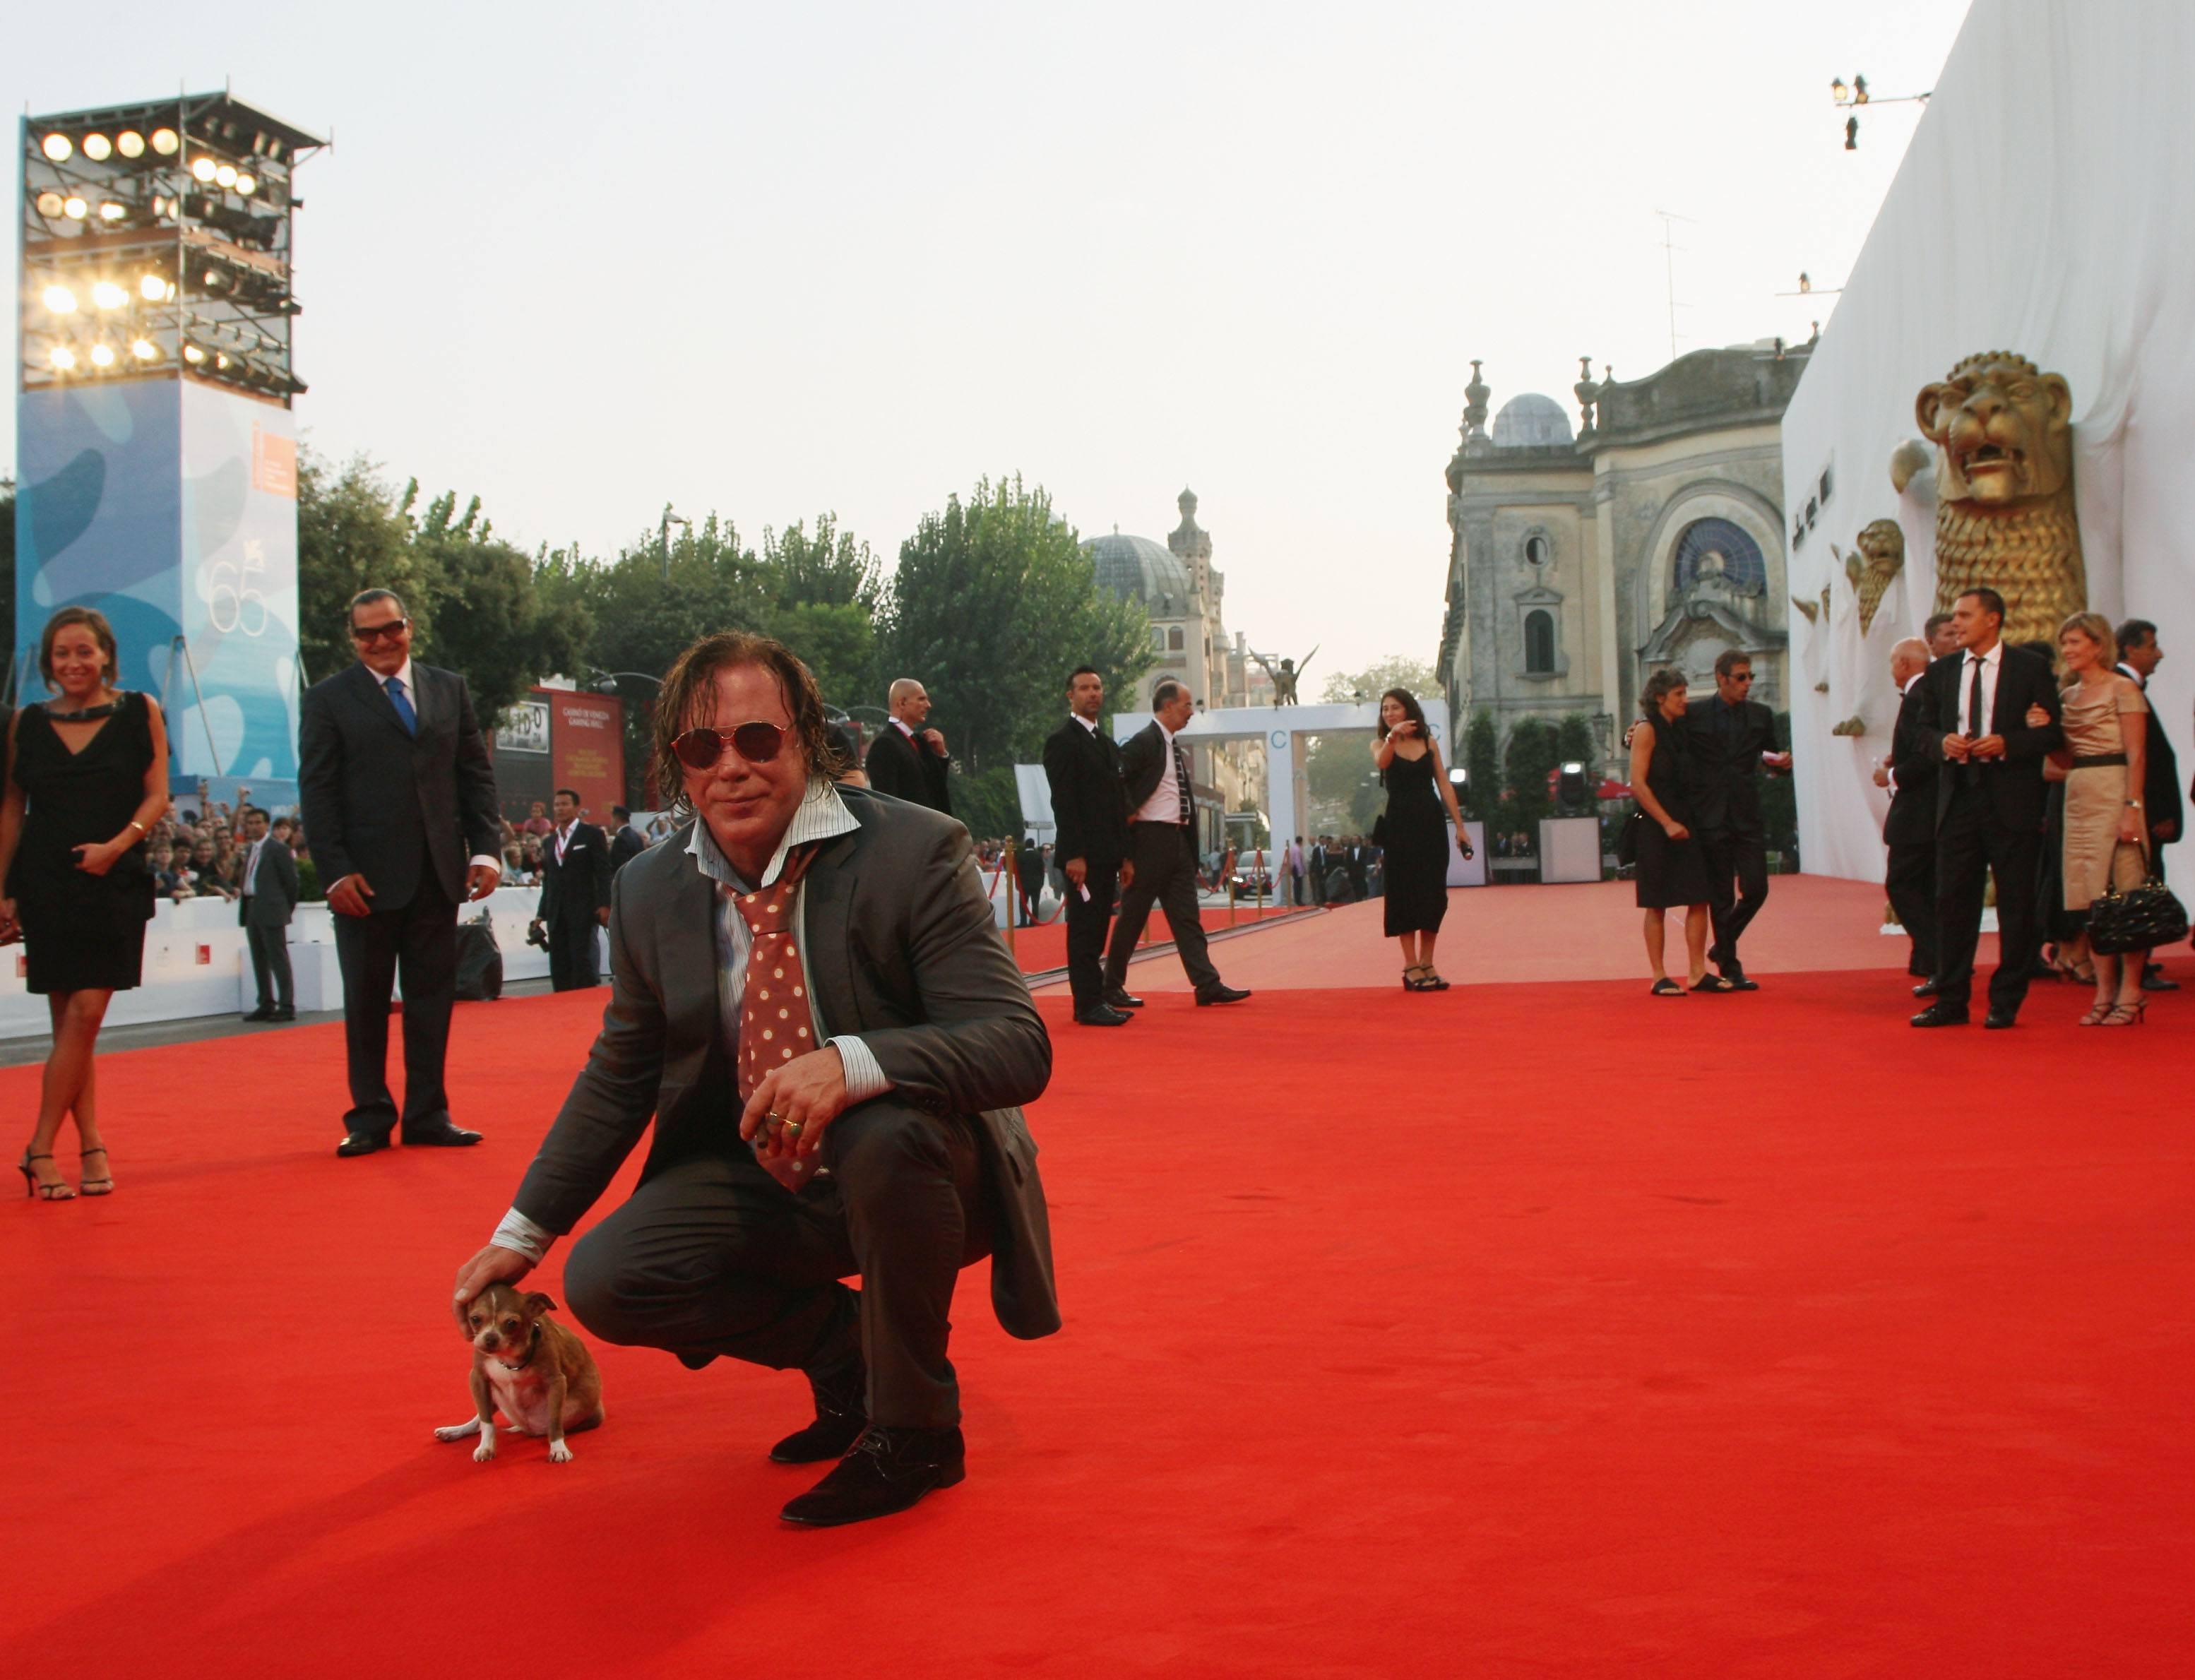 Actor Mickey Rourke and dog Loki attend the 65th Venice Film Festival Closing Ceremony at the at the Sala Grande on September 6, 2008 in Venice, Italy.